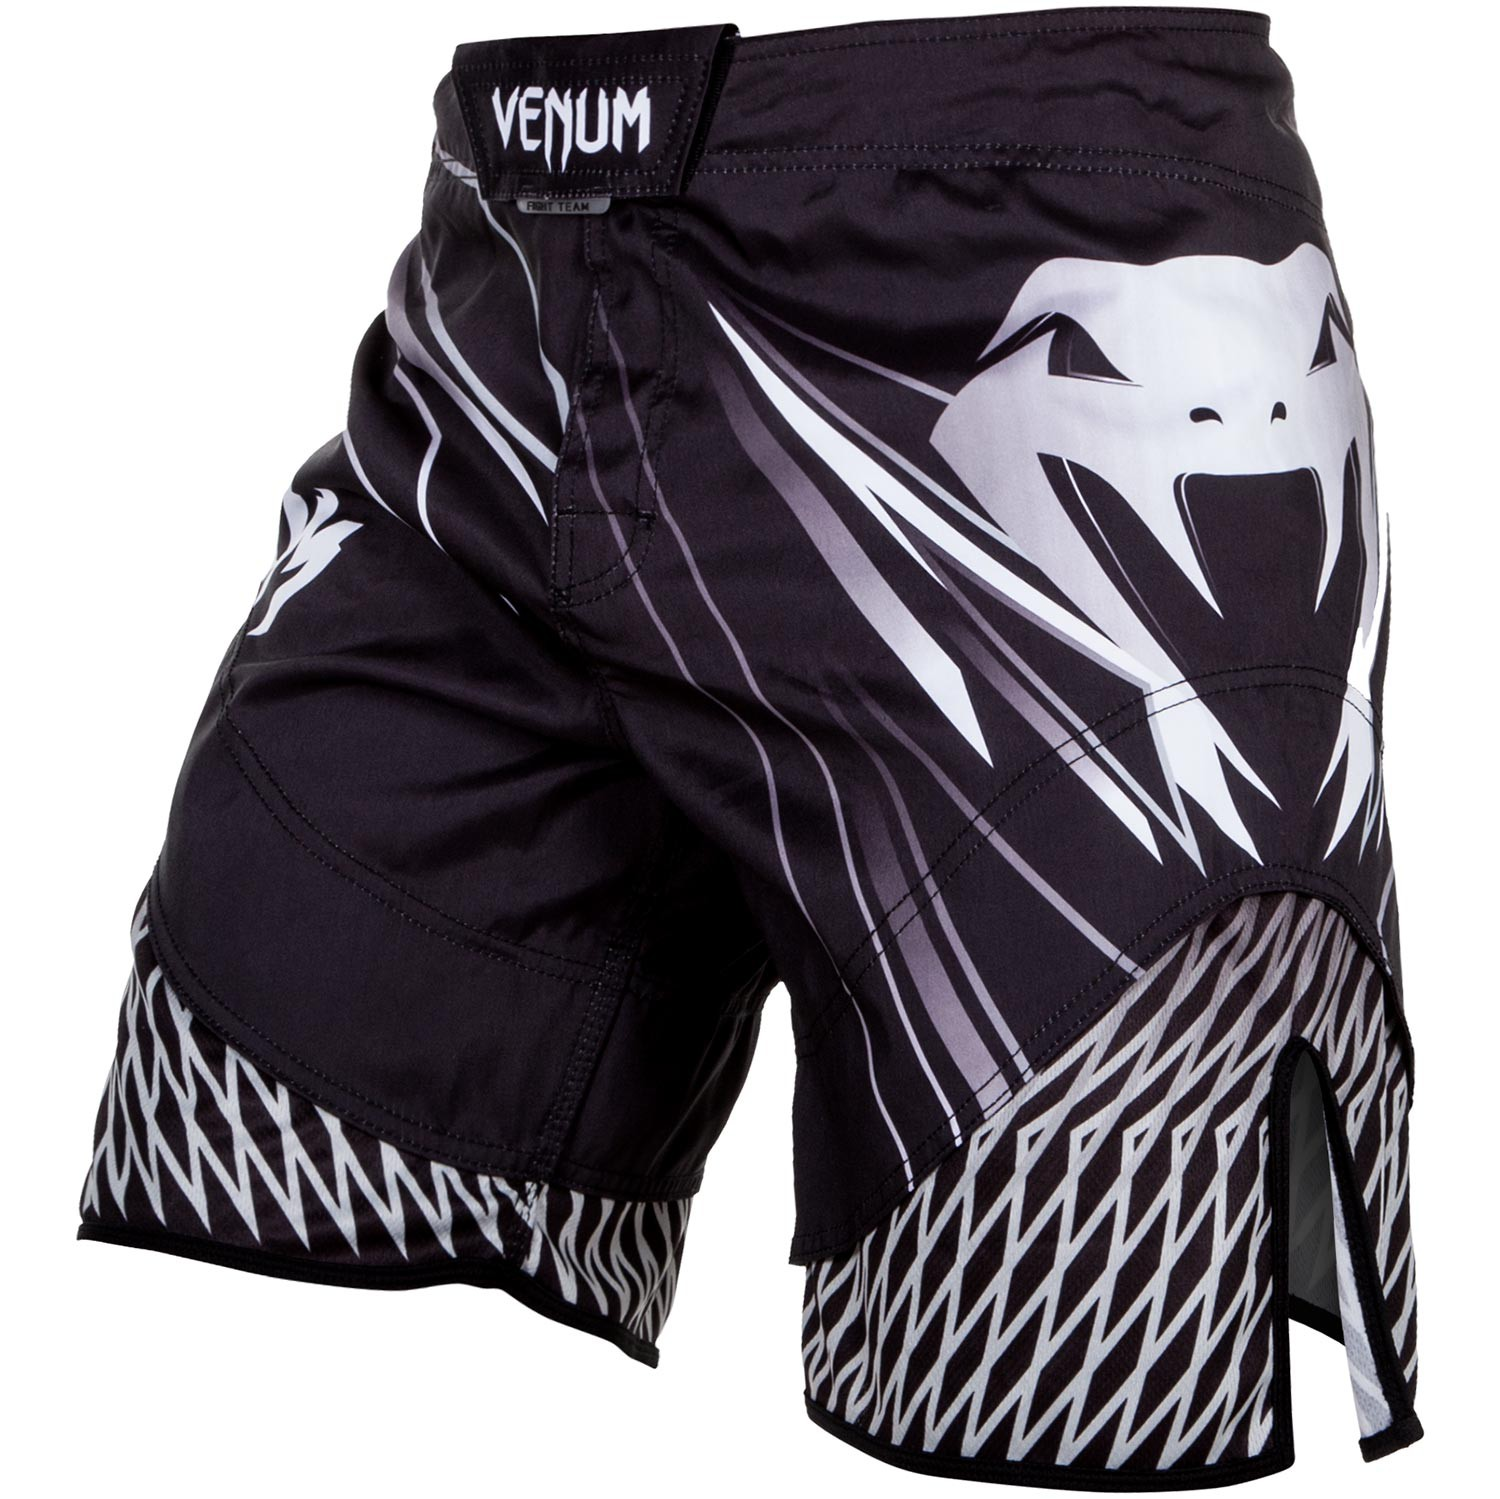 Шорты Venum Shockwave 4.0 Fightshorts Black/Grey